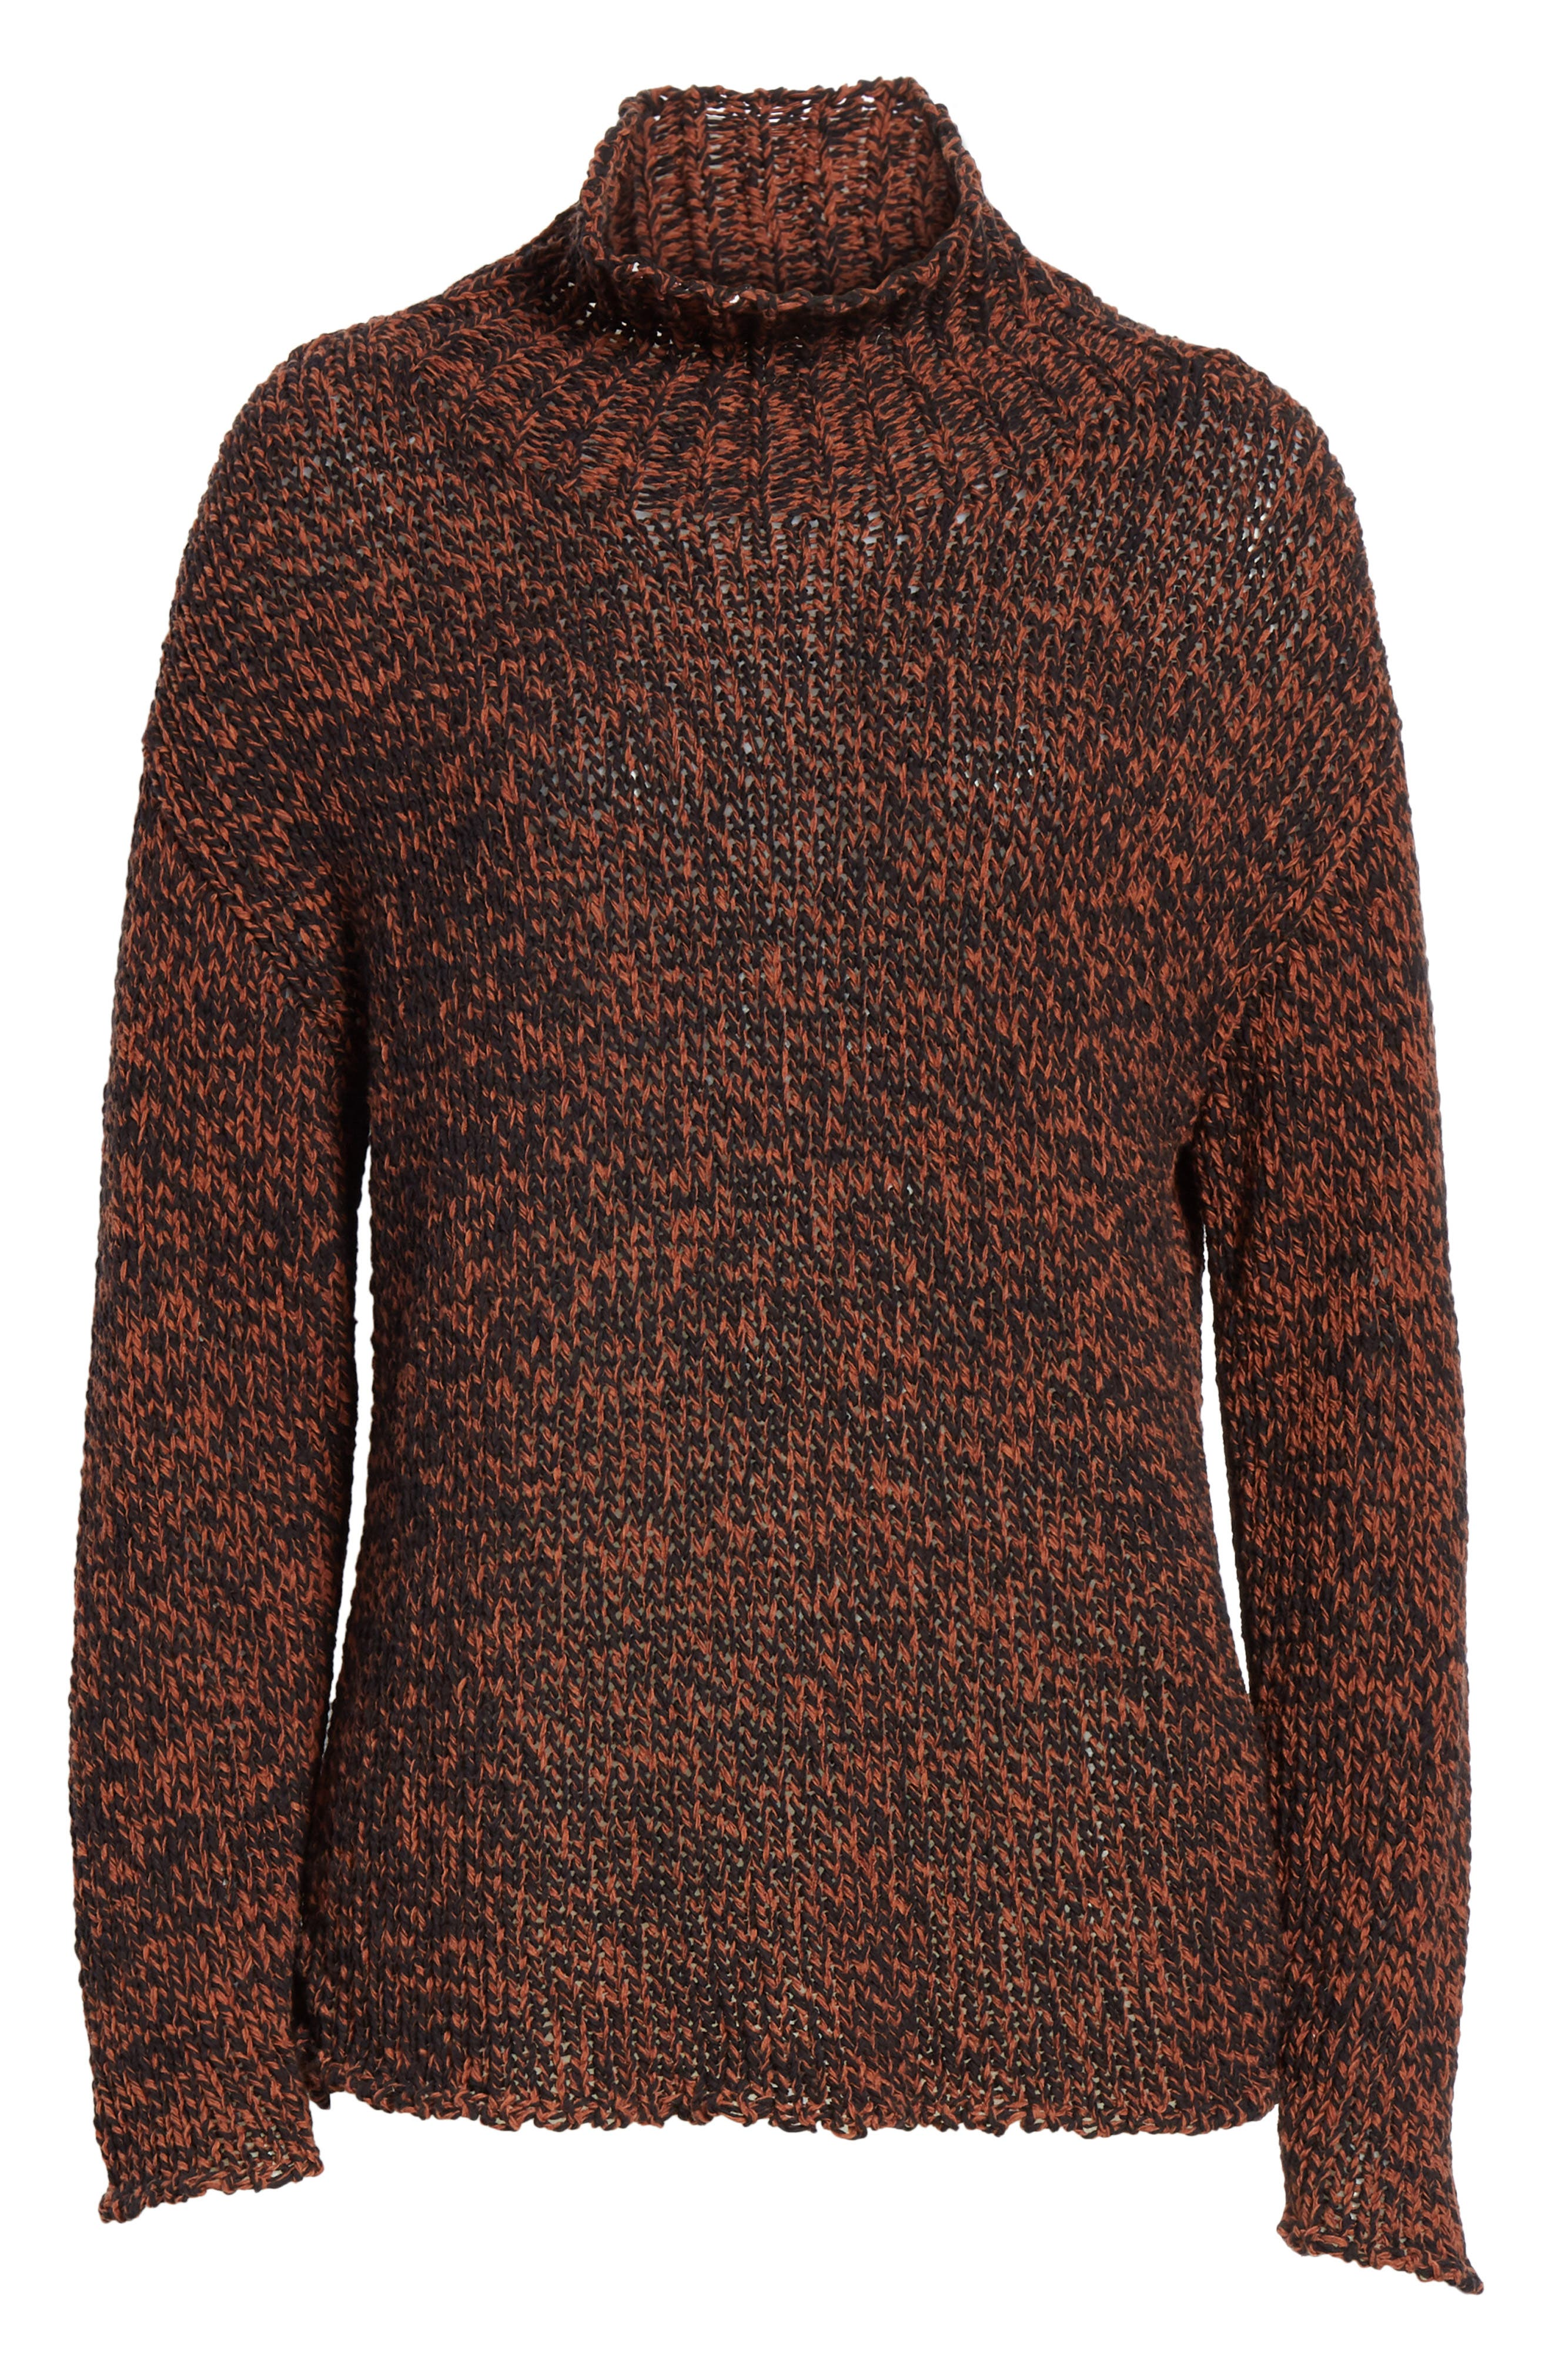 Marled Organic Cotton Blend Sweater,                             Alternate thumbnail 6, color,                             NUTMEG